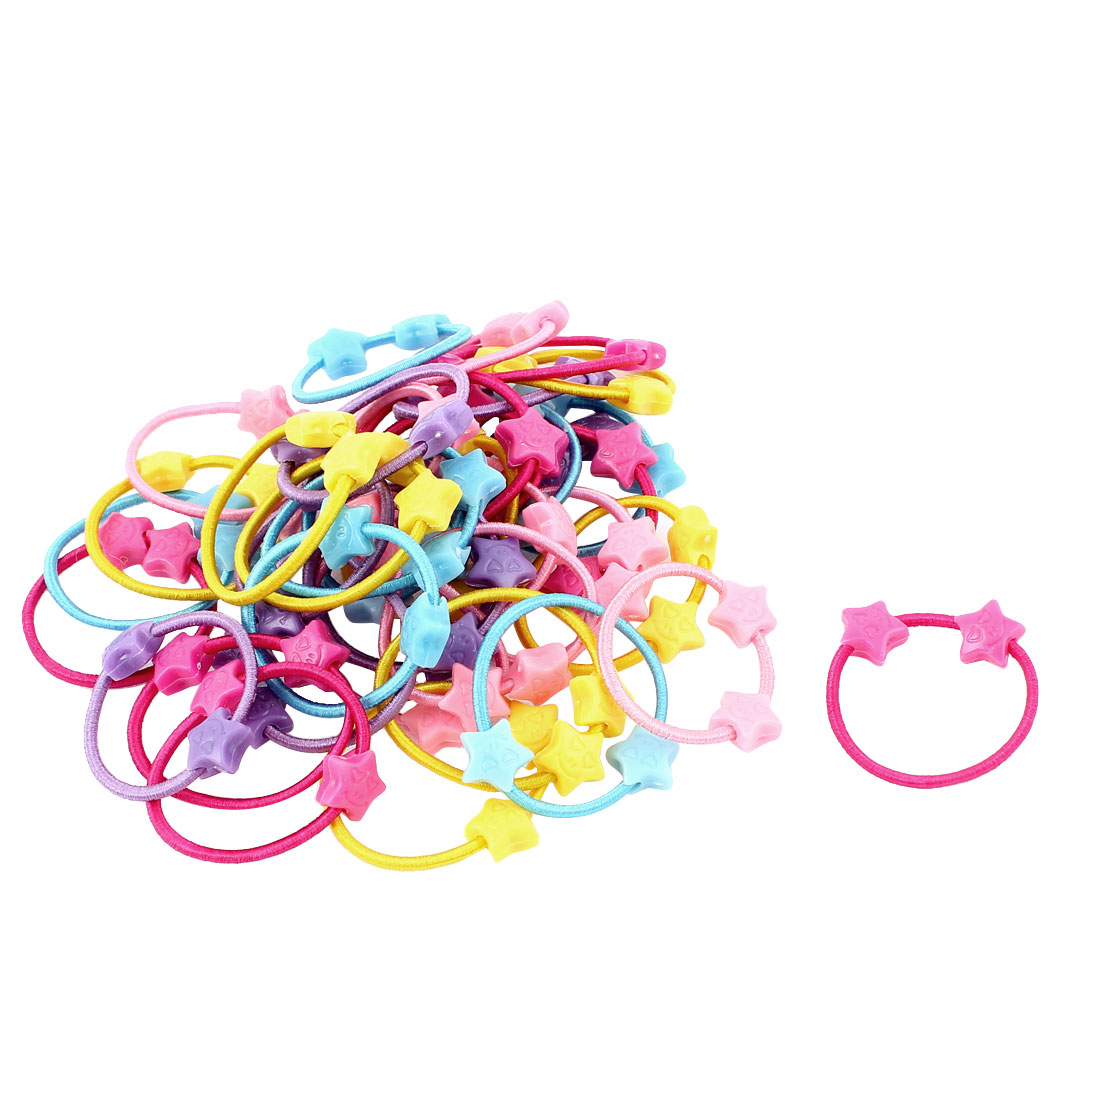 50 Pcs Assorted Color Heart Shape Elastic Ponytail Holder Hair Ties